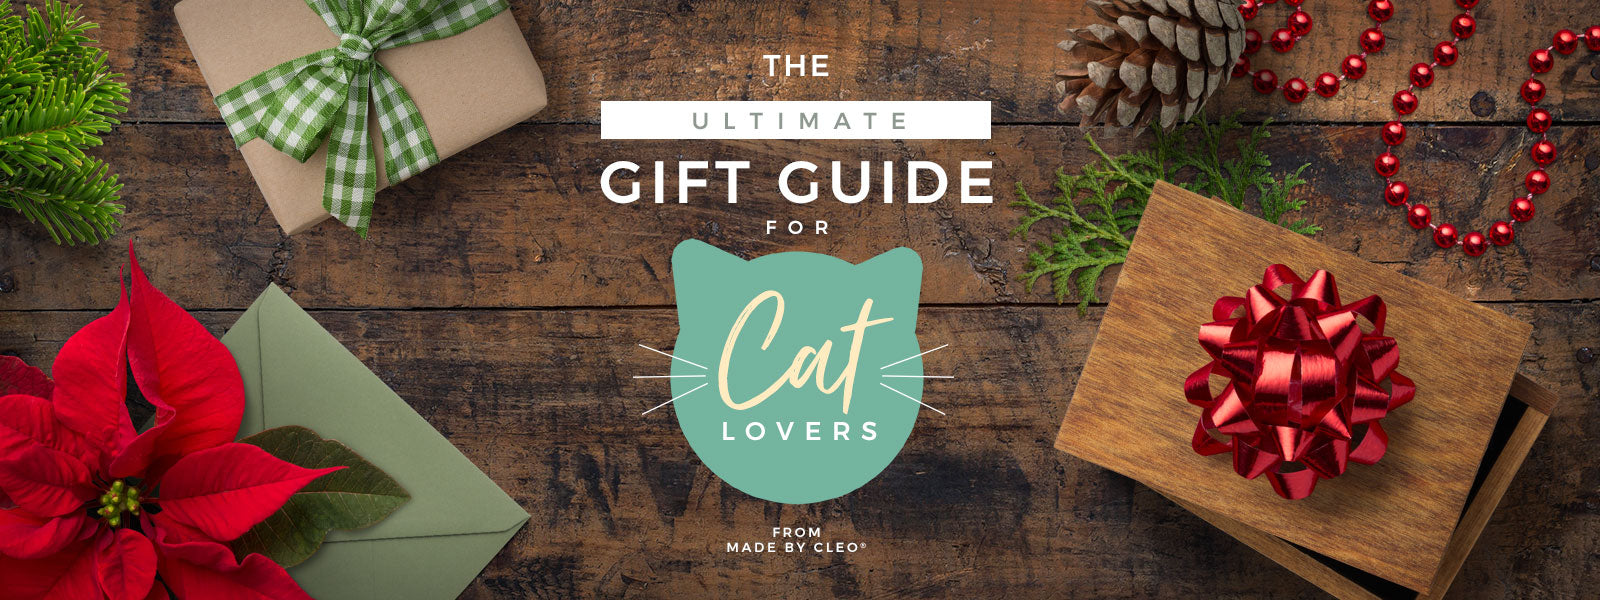 The Ultimate Gift Guide For Cat Lovers - 2019